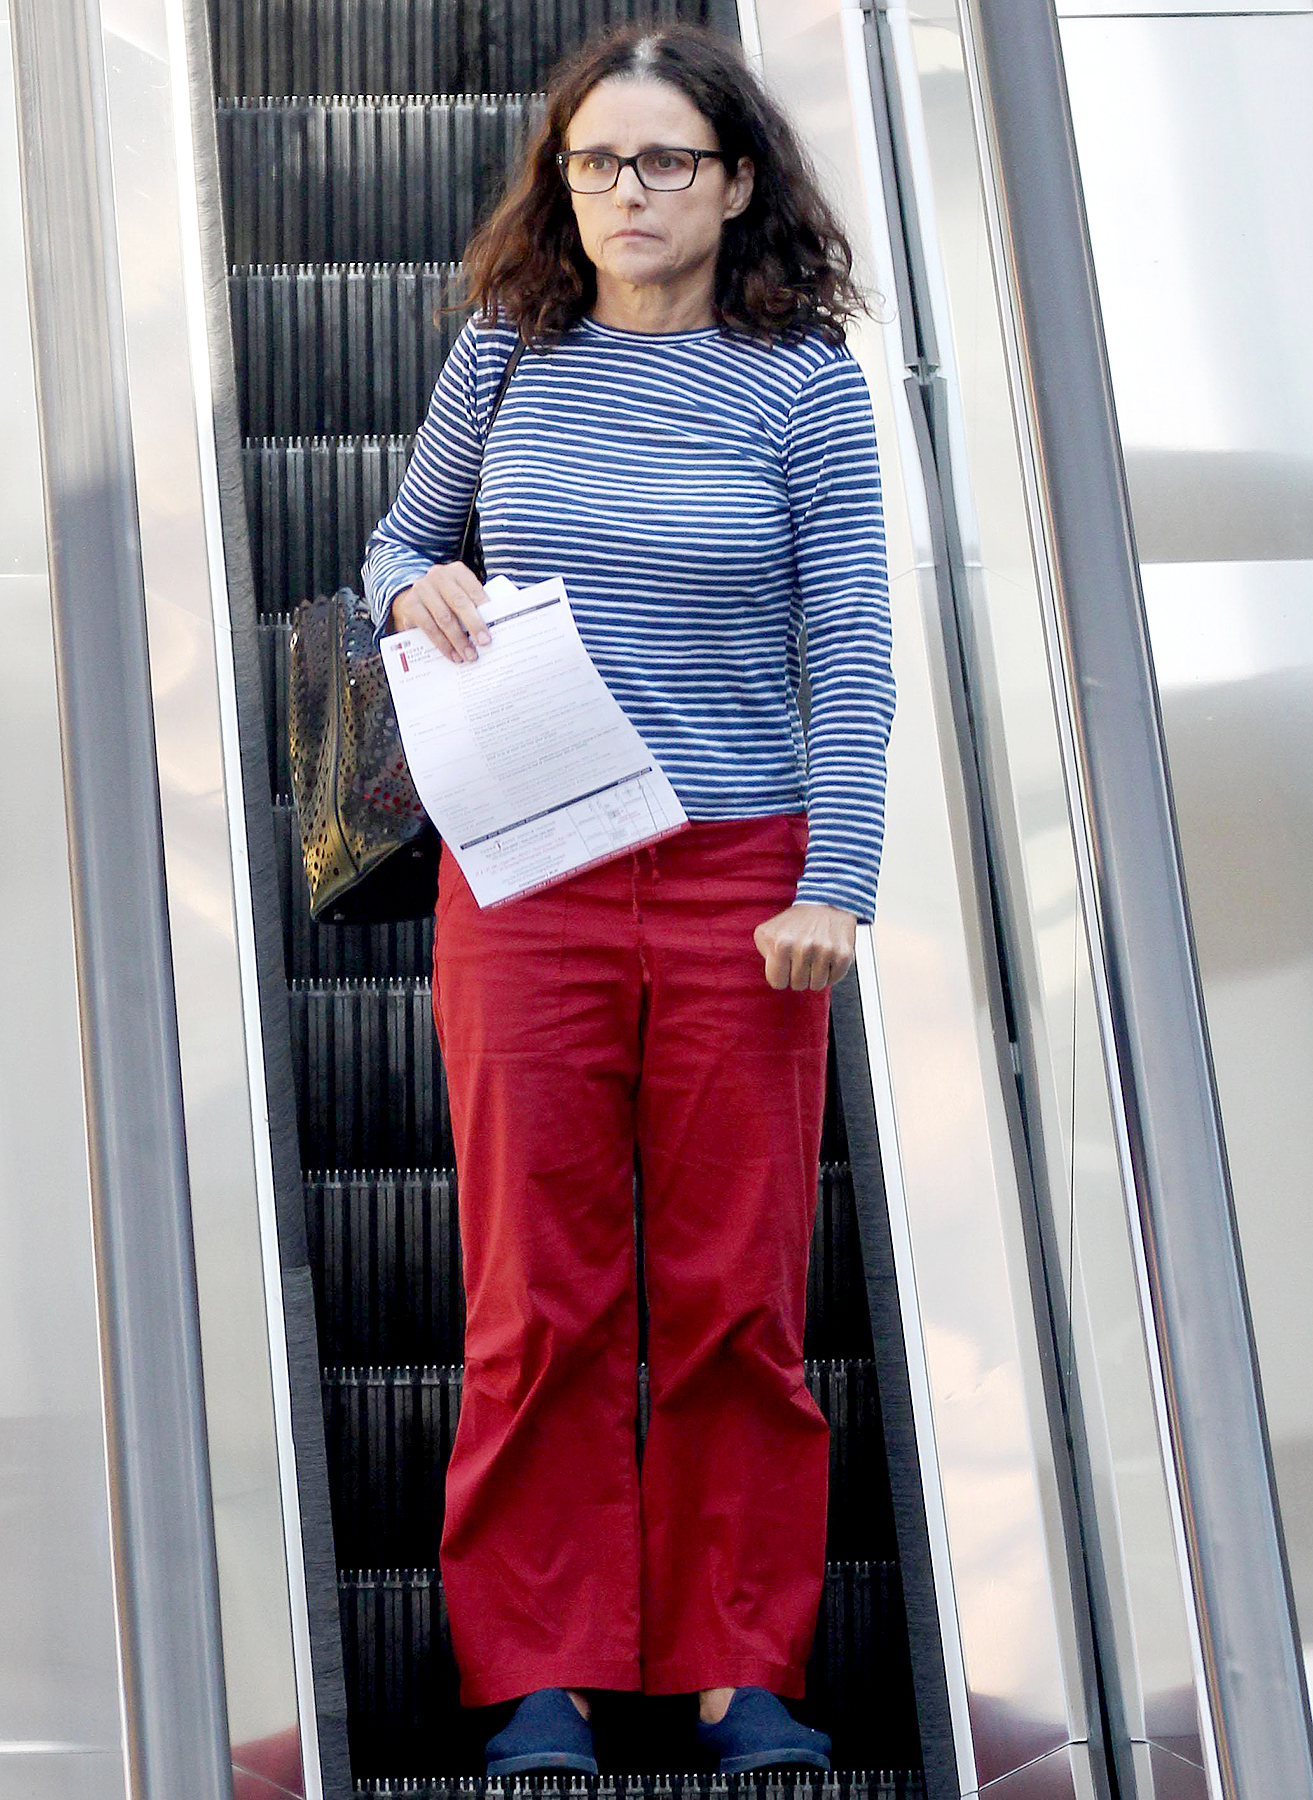 Julia Louis-Dreyfus carries some paperwork as she exits a doctors office in Los Angeles October 12, 2017.